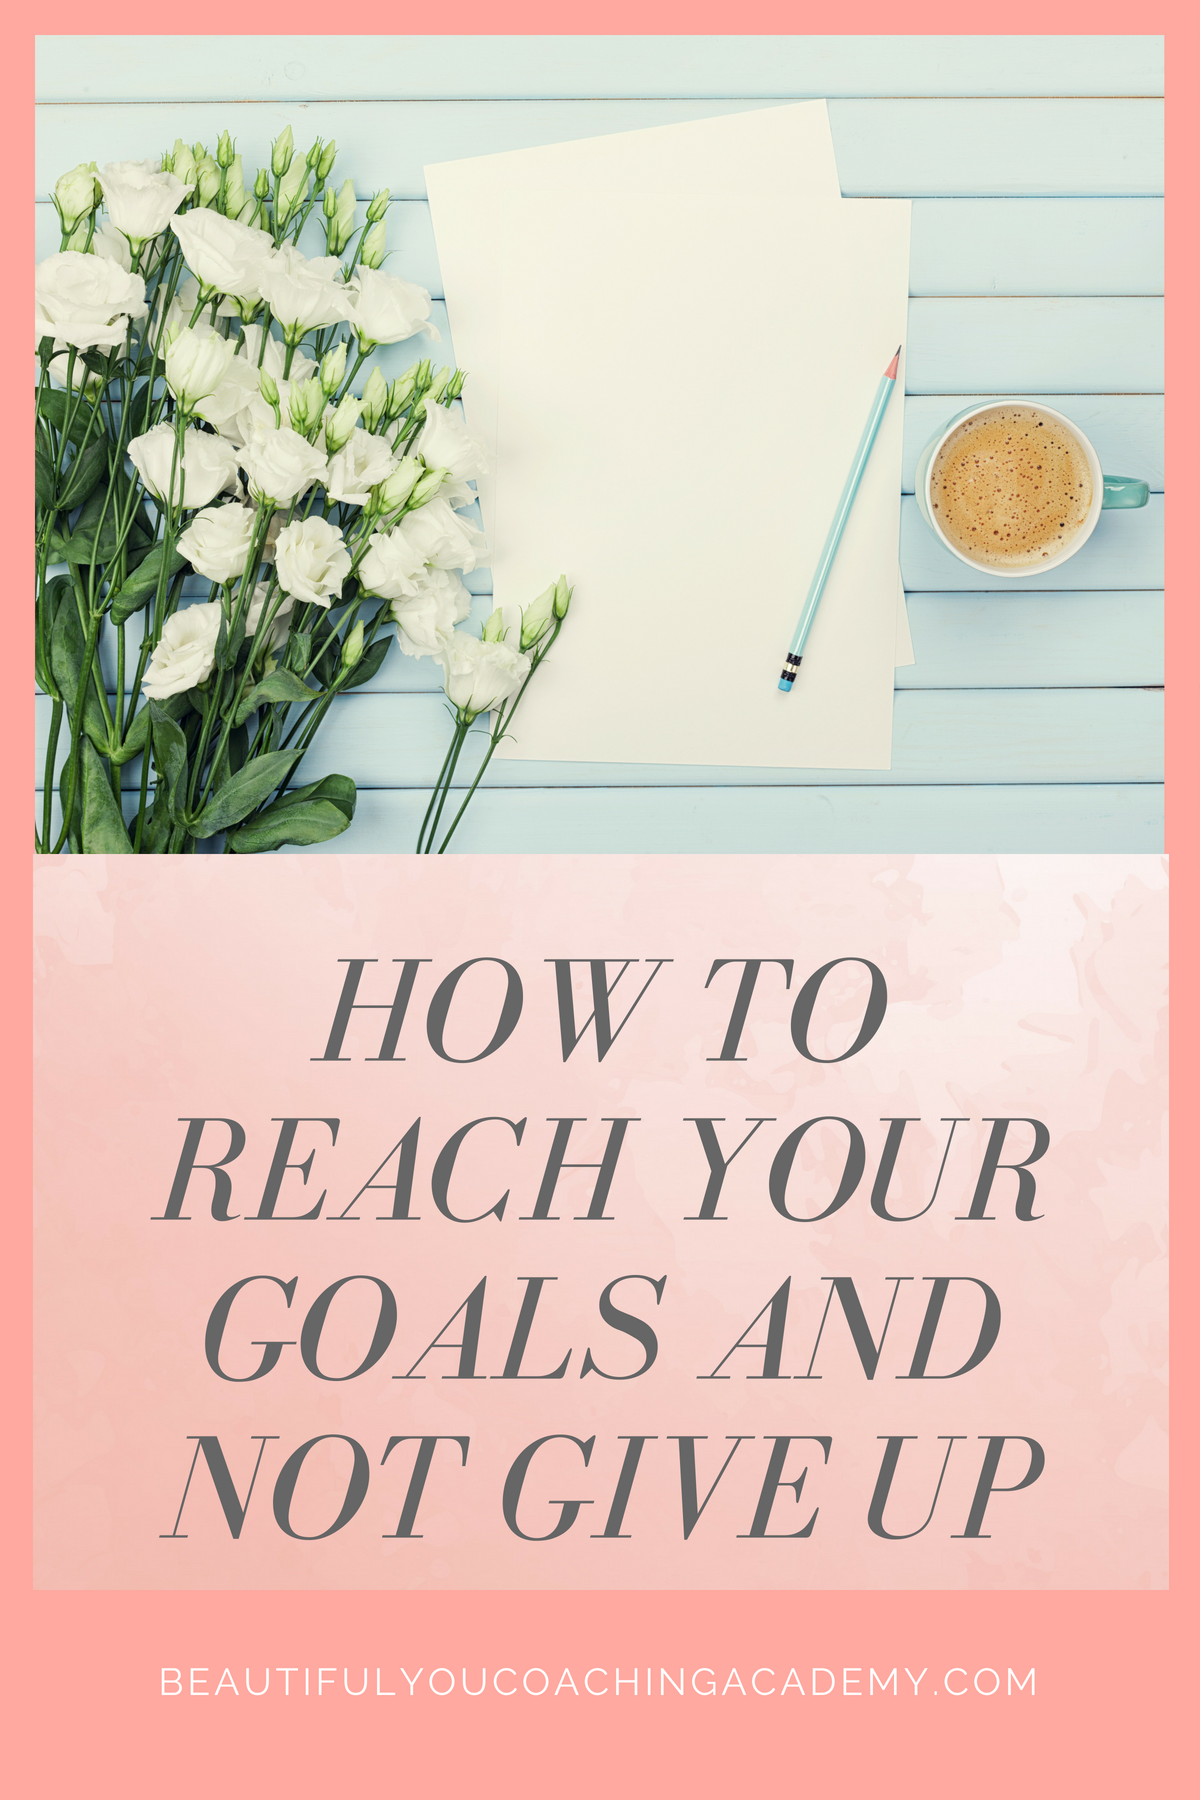 How To Reach Your Goals and Not Give Up